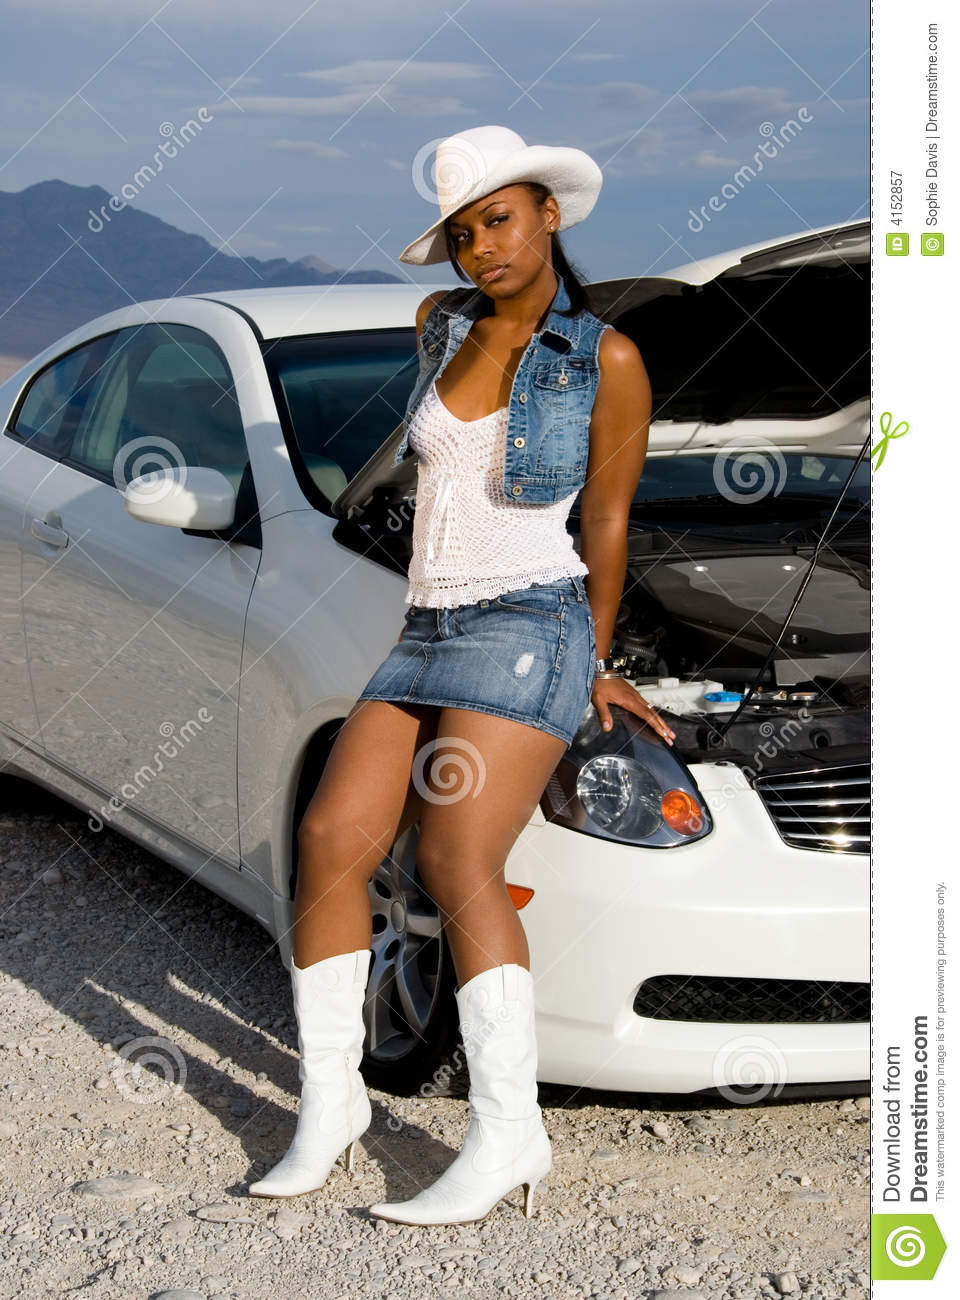 Sexy Woman And Car Royalty Free Stock Photography Image